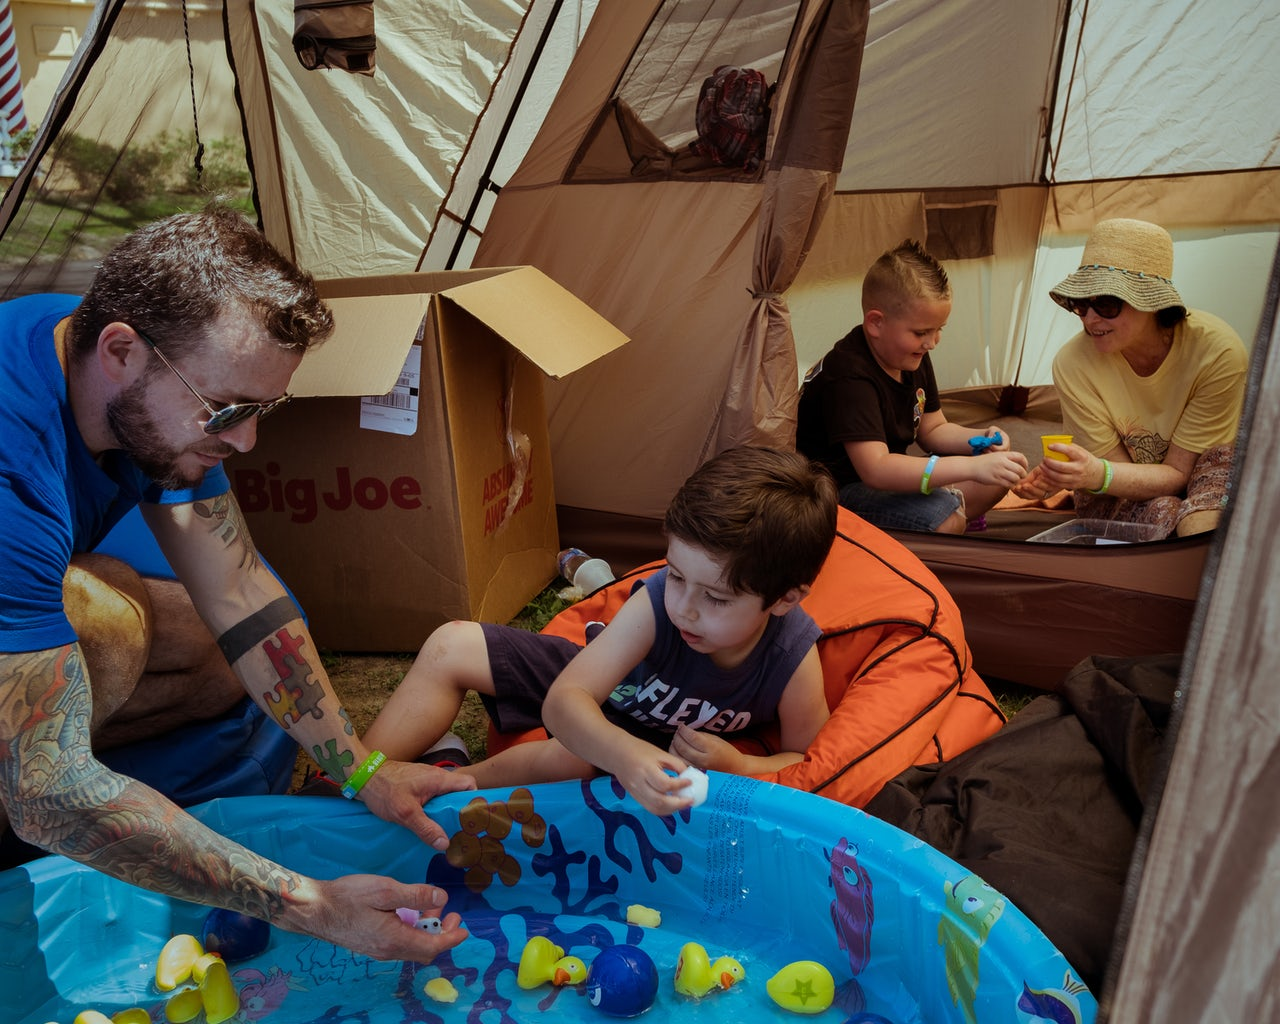 In a waterside Decompression Tent by the Six Flags Fantasy Forest, a man shares a moment with a young boy. The multicolored puzzle tattoo pattern on his forearm represents autism awareness.